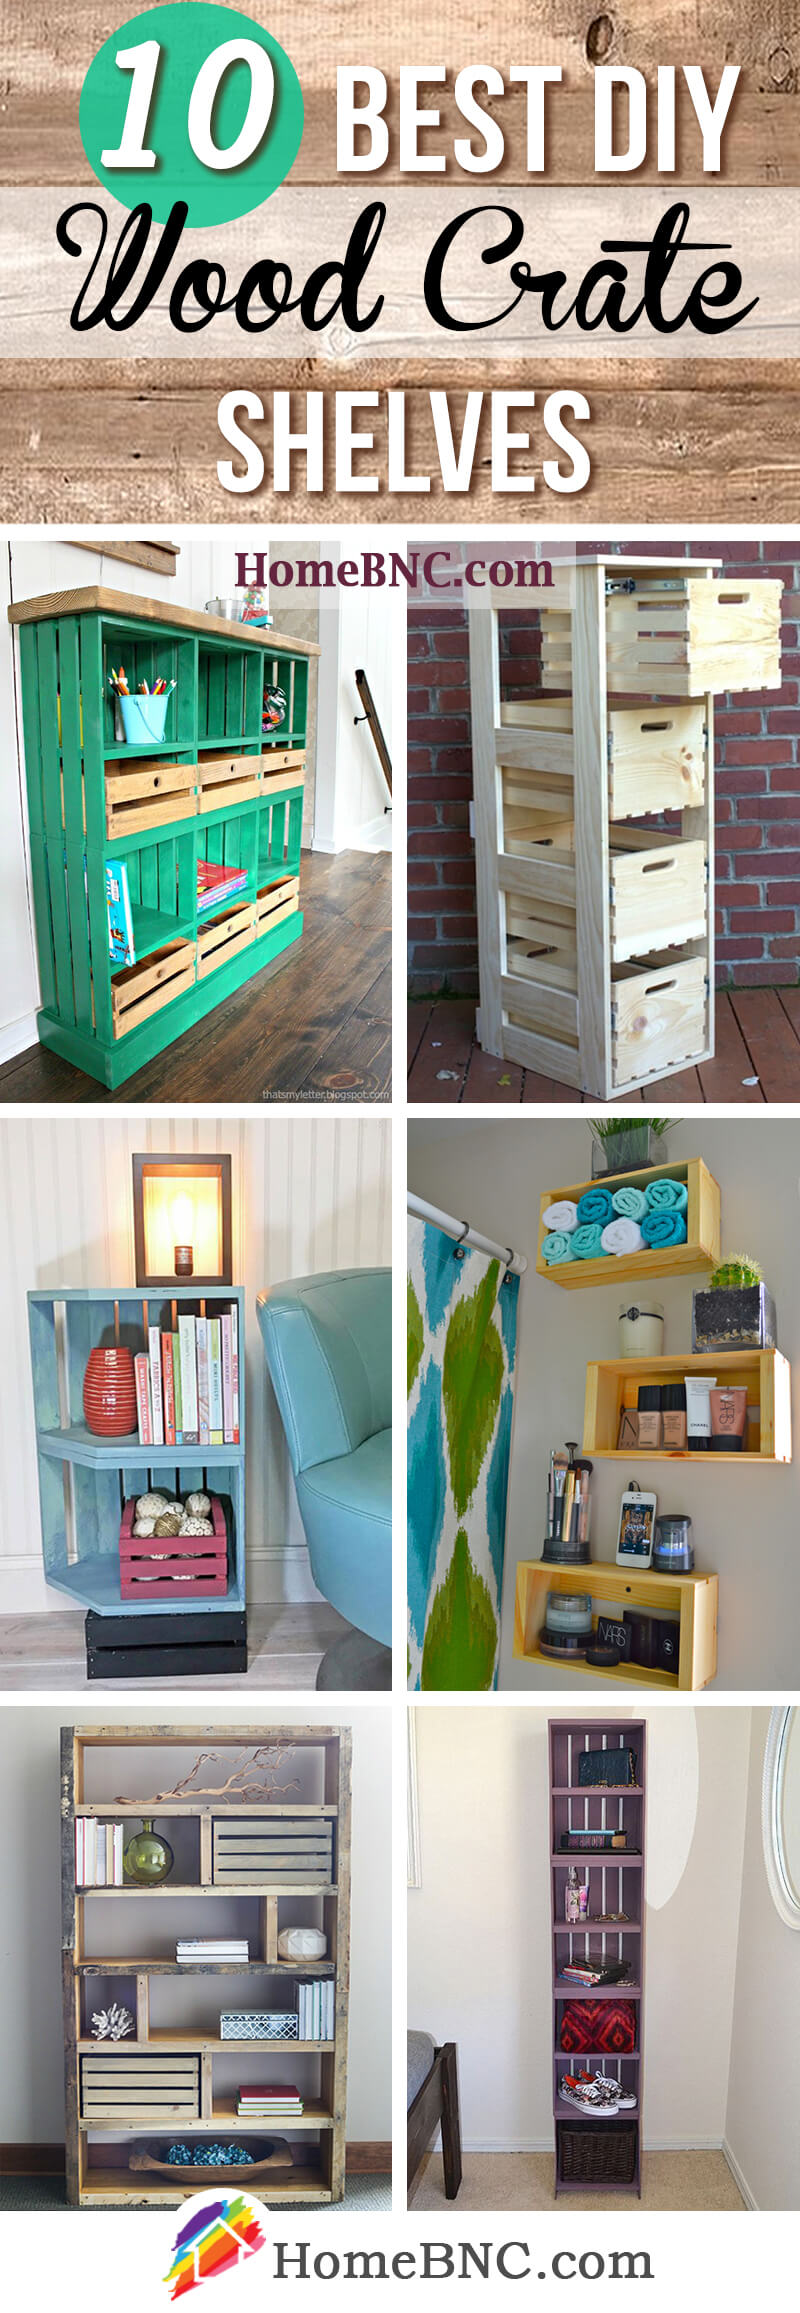 DIY Wood Crate Shelve Ideas